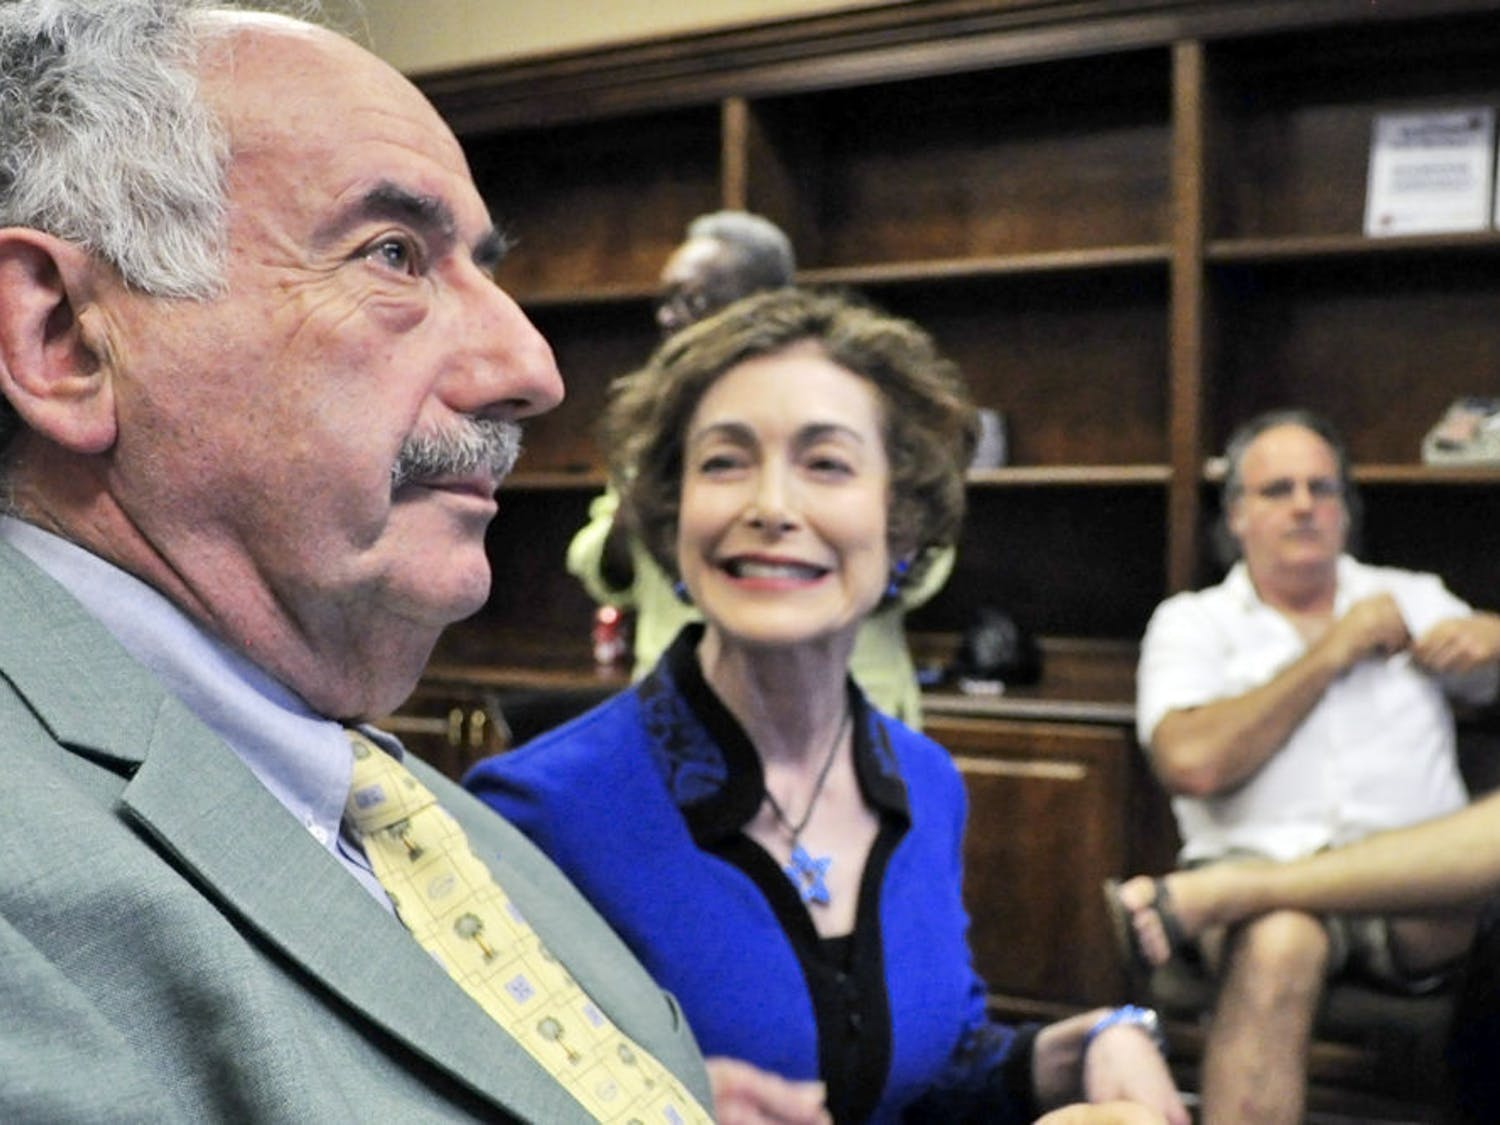 Harvey Budd and his wife Ilene Silverman react to the city commission election results at the Supervisor of Elections office on Tuesday. Budd, who received 33.31 percent of the vote, will run off for the at-large seat against Jay Curtis, who received 32.31 percent of the vote.